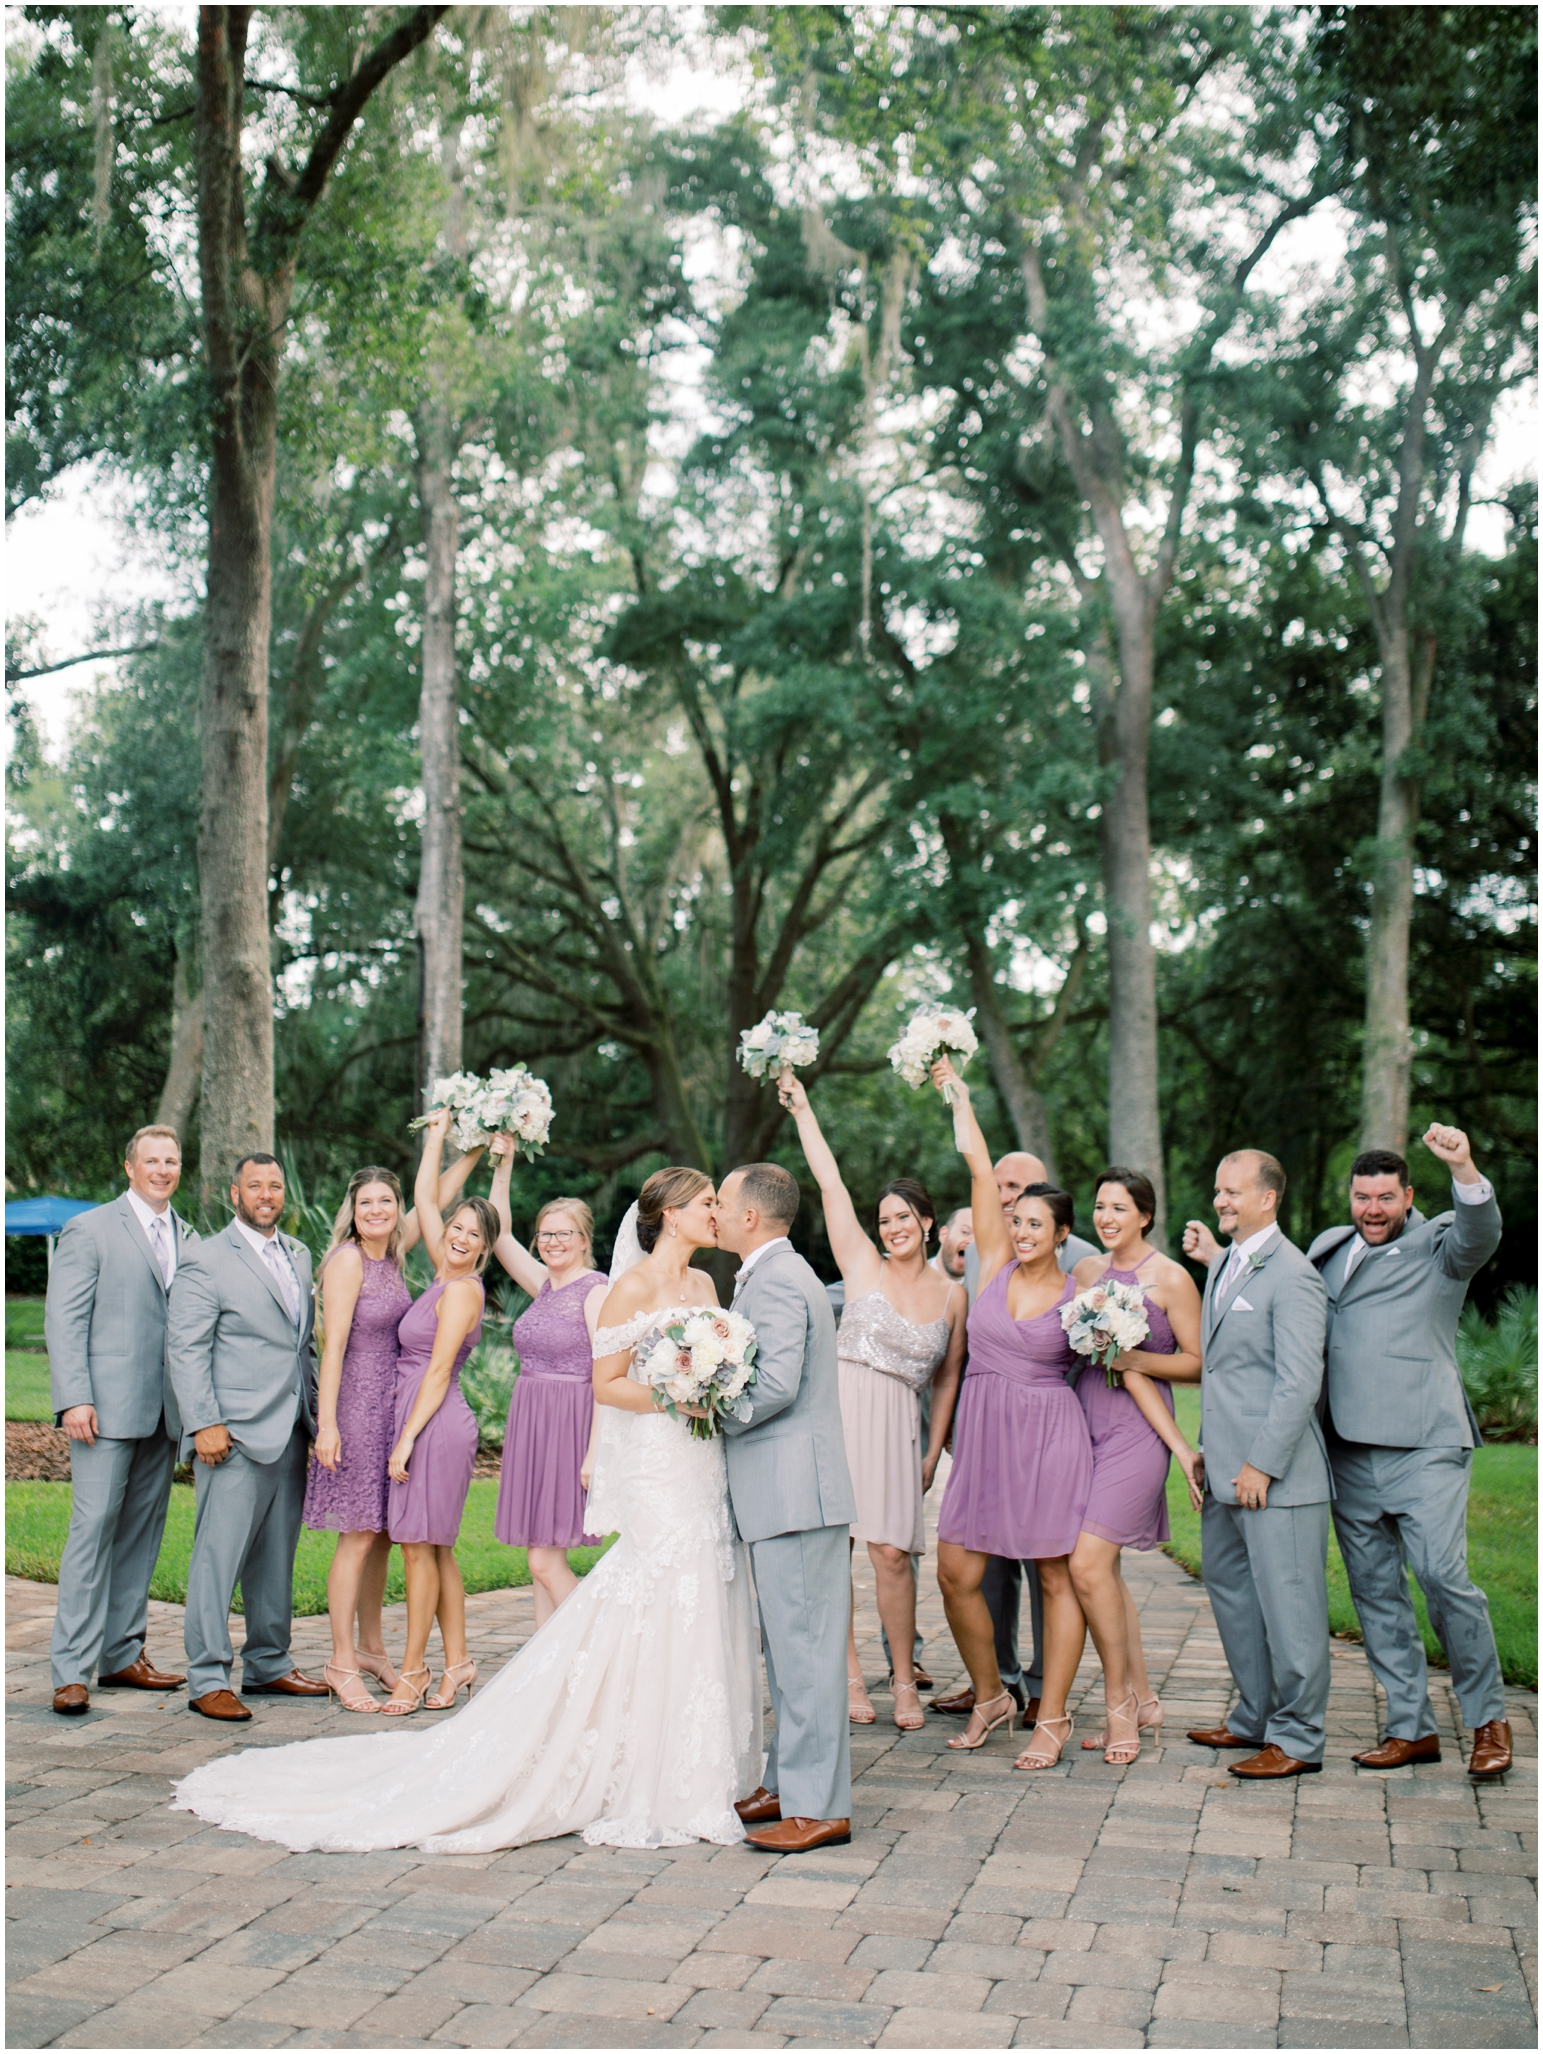 Lisa Silva Photography- Jacksonville, St Augustine, Fernandina Beach, Amelia Island, Ponte Vedra Beach, North East Florida Fine Art Film Photographer- Ashley and Shawn's wedding at bowing oaks plantation_0073.jpg